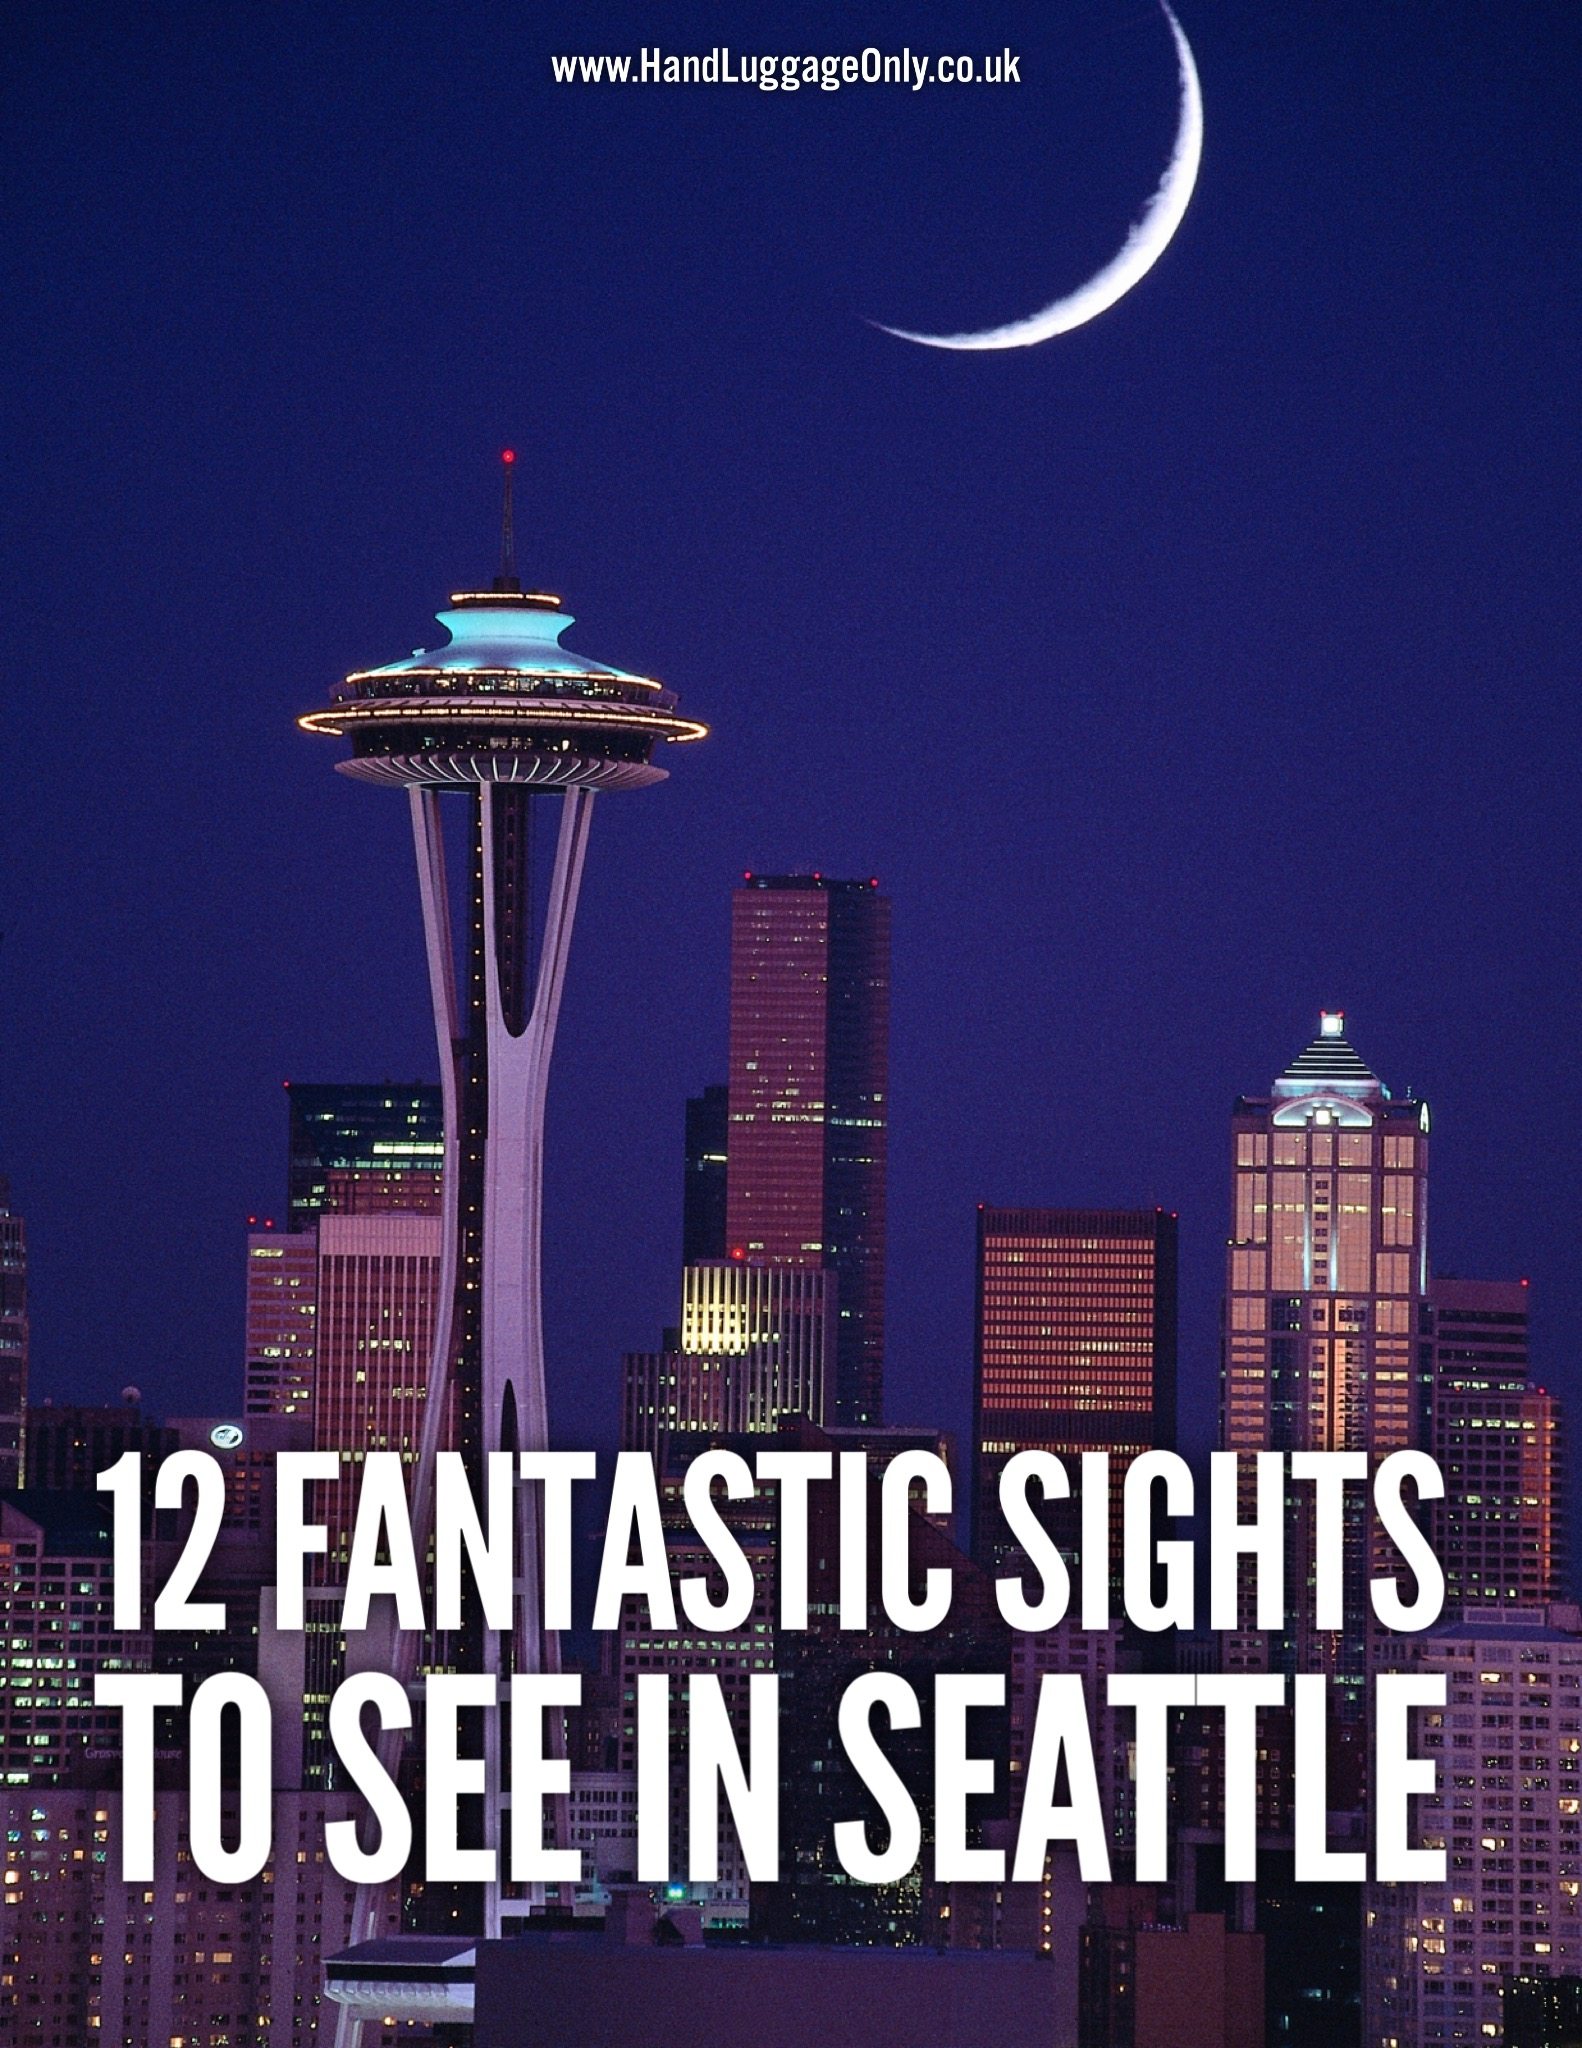 12 Fantastic Sights You Have To See In Seattle, USA (2)